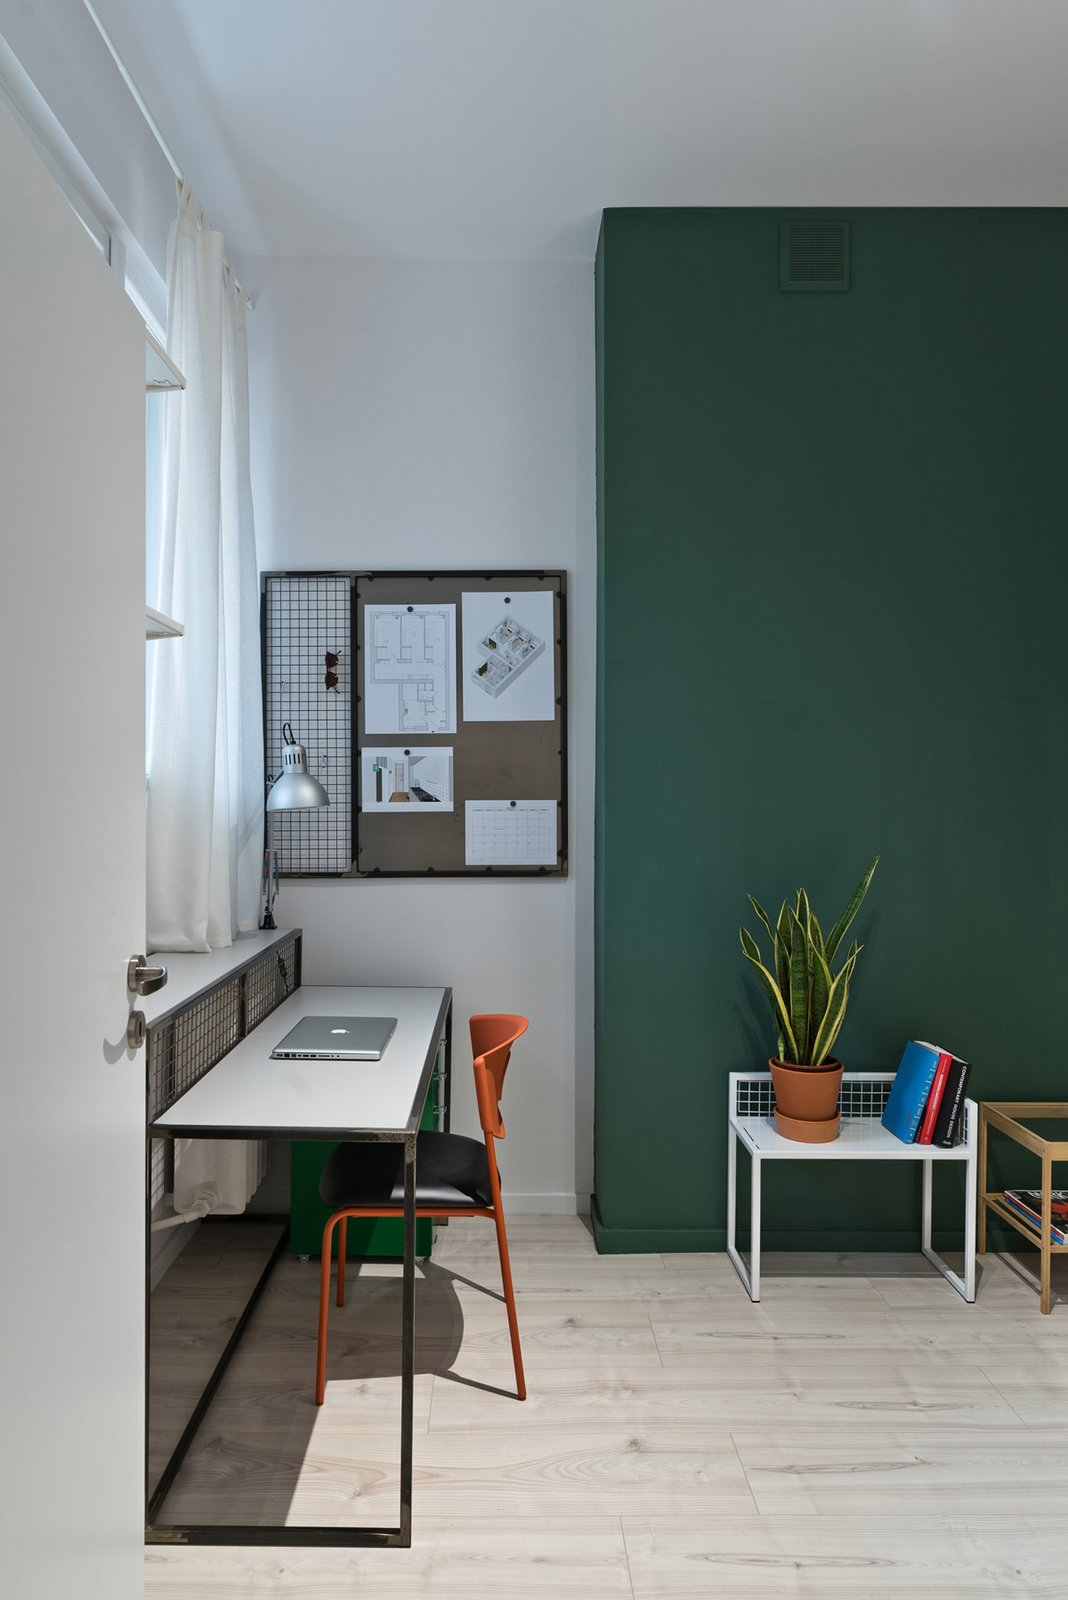 One student bedroom features the second green accent wall each bedroom is about 140 square